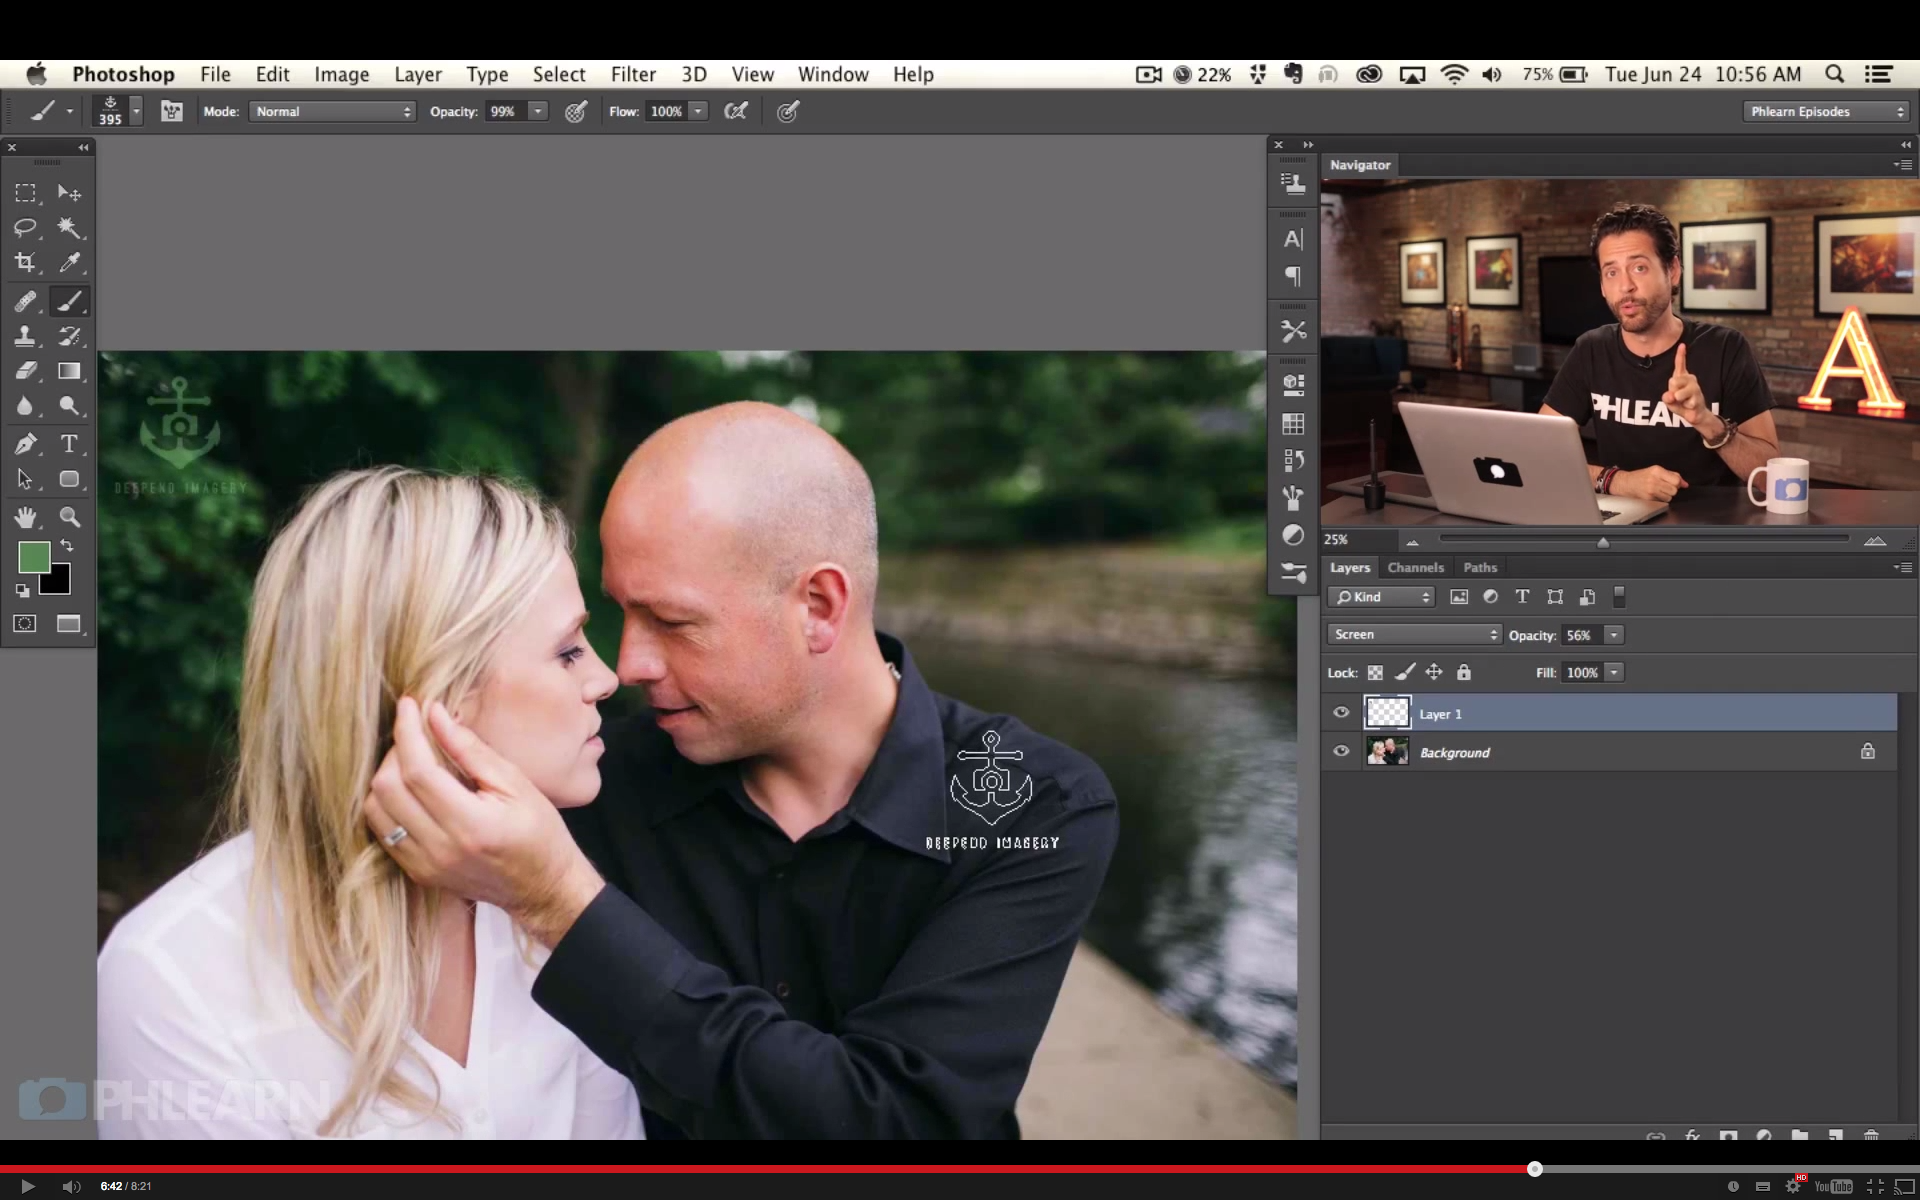 Effectively and subtly add watermarks in Photoshop